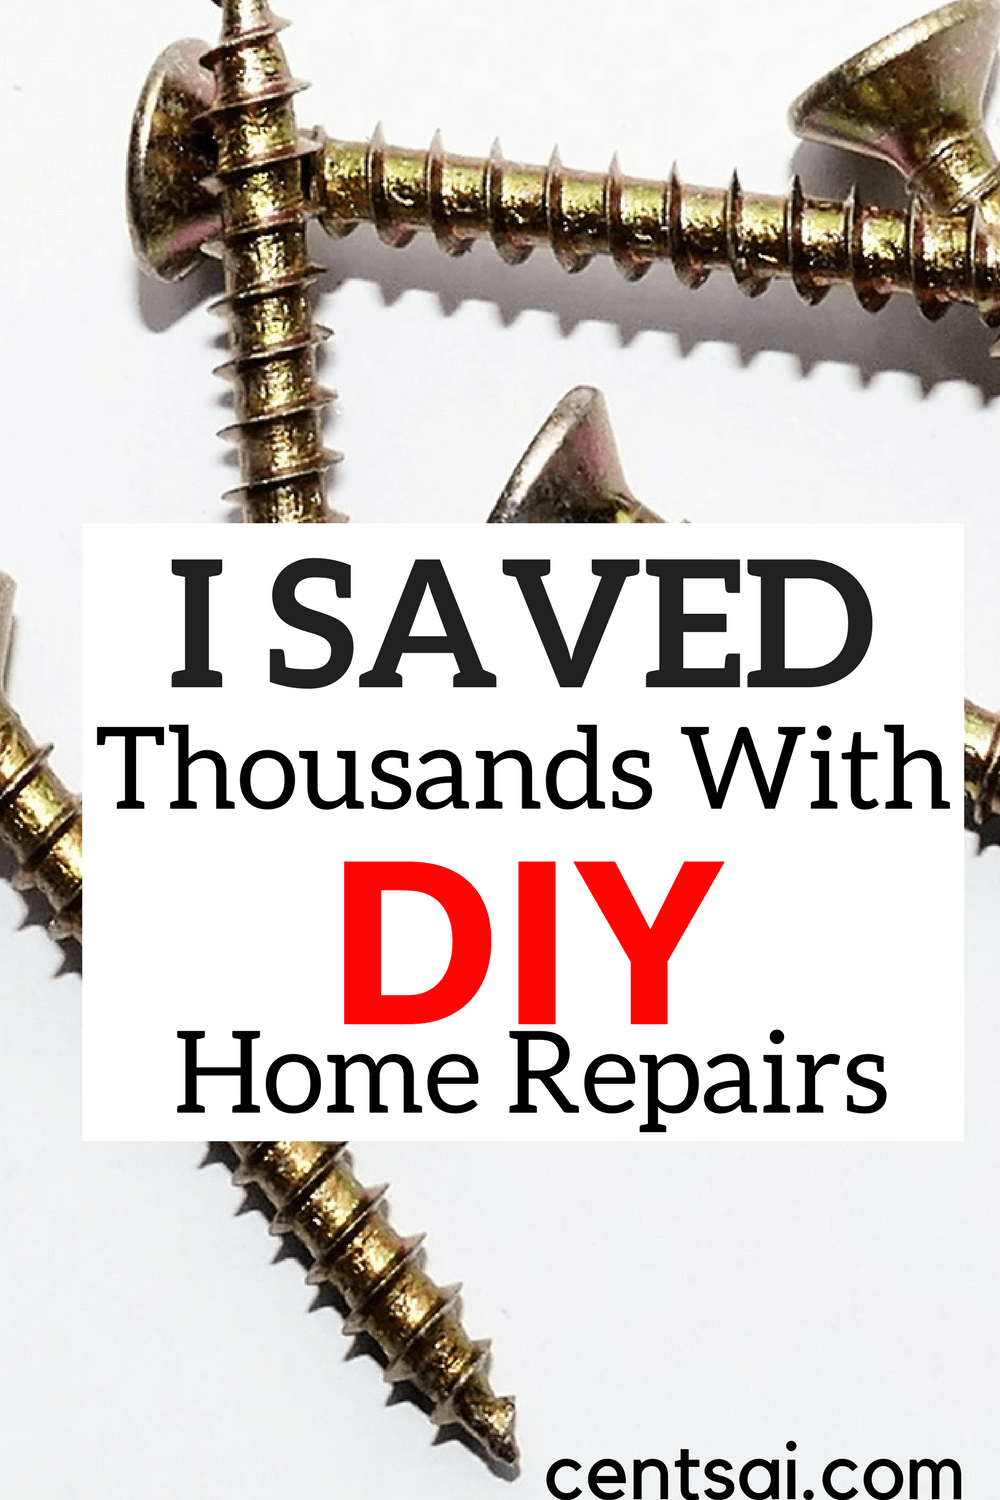 I Saved Thousands With DIY Home Repairs. Homeownership can get expensive if you don't have the right skills to take on a few DIY projects around the house.